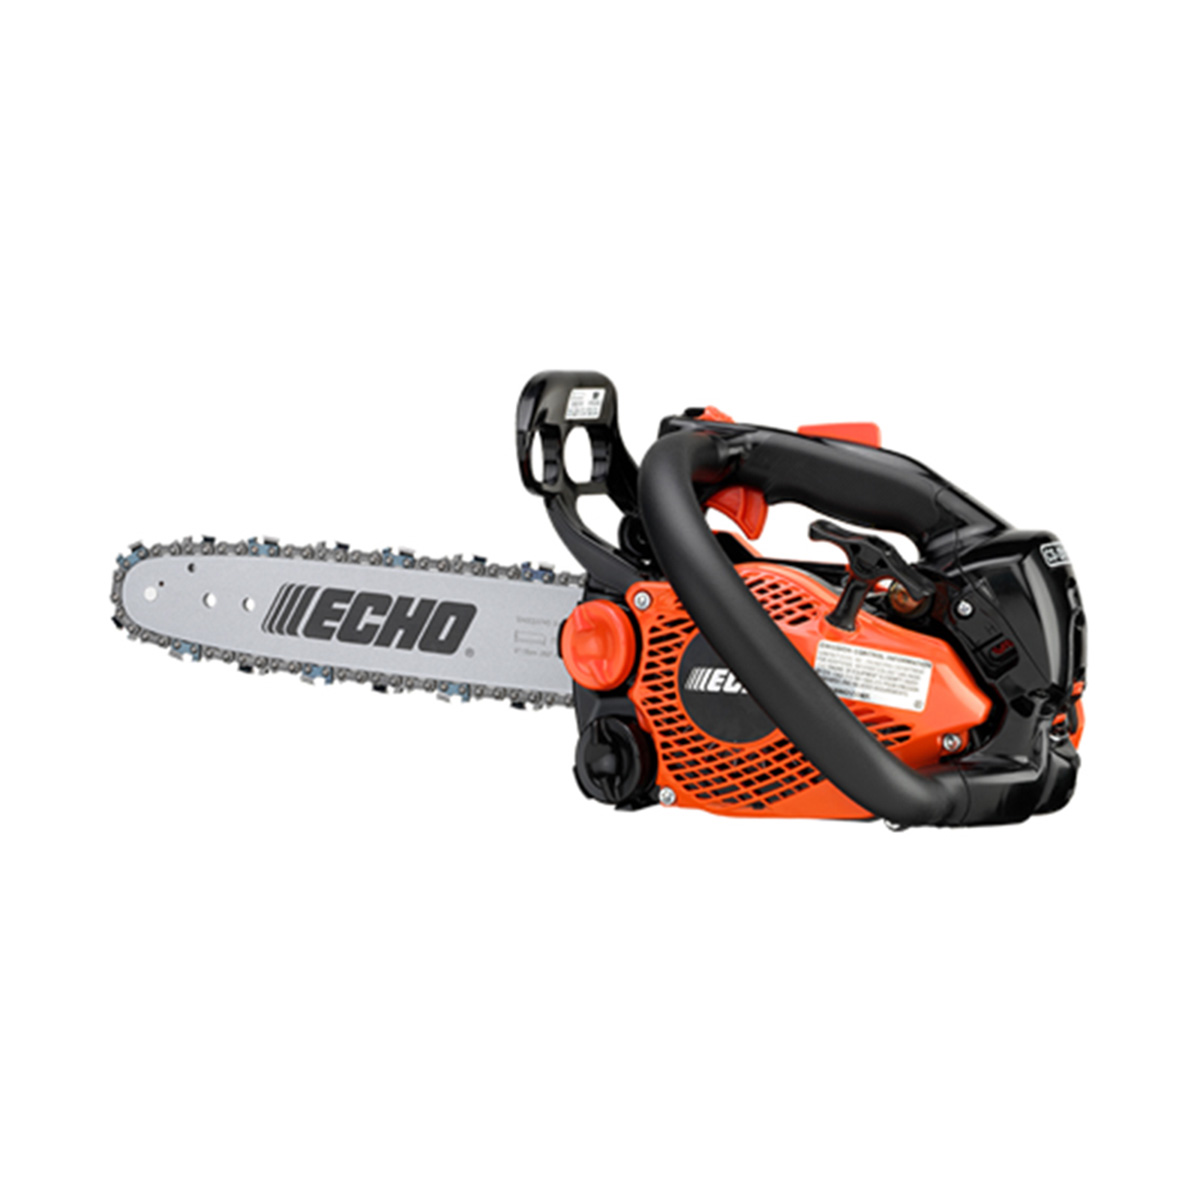 CS-2511T-12 ECHO Chainsaw with 12